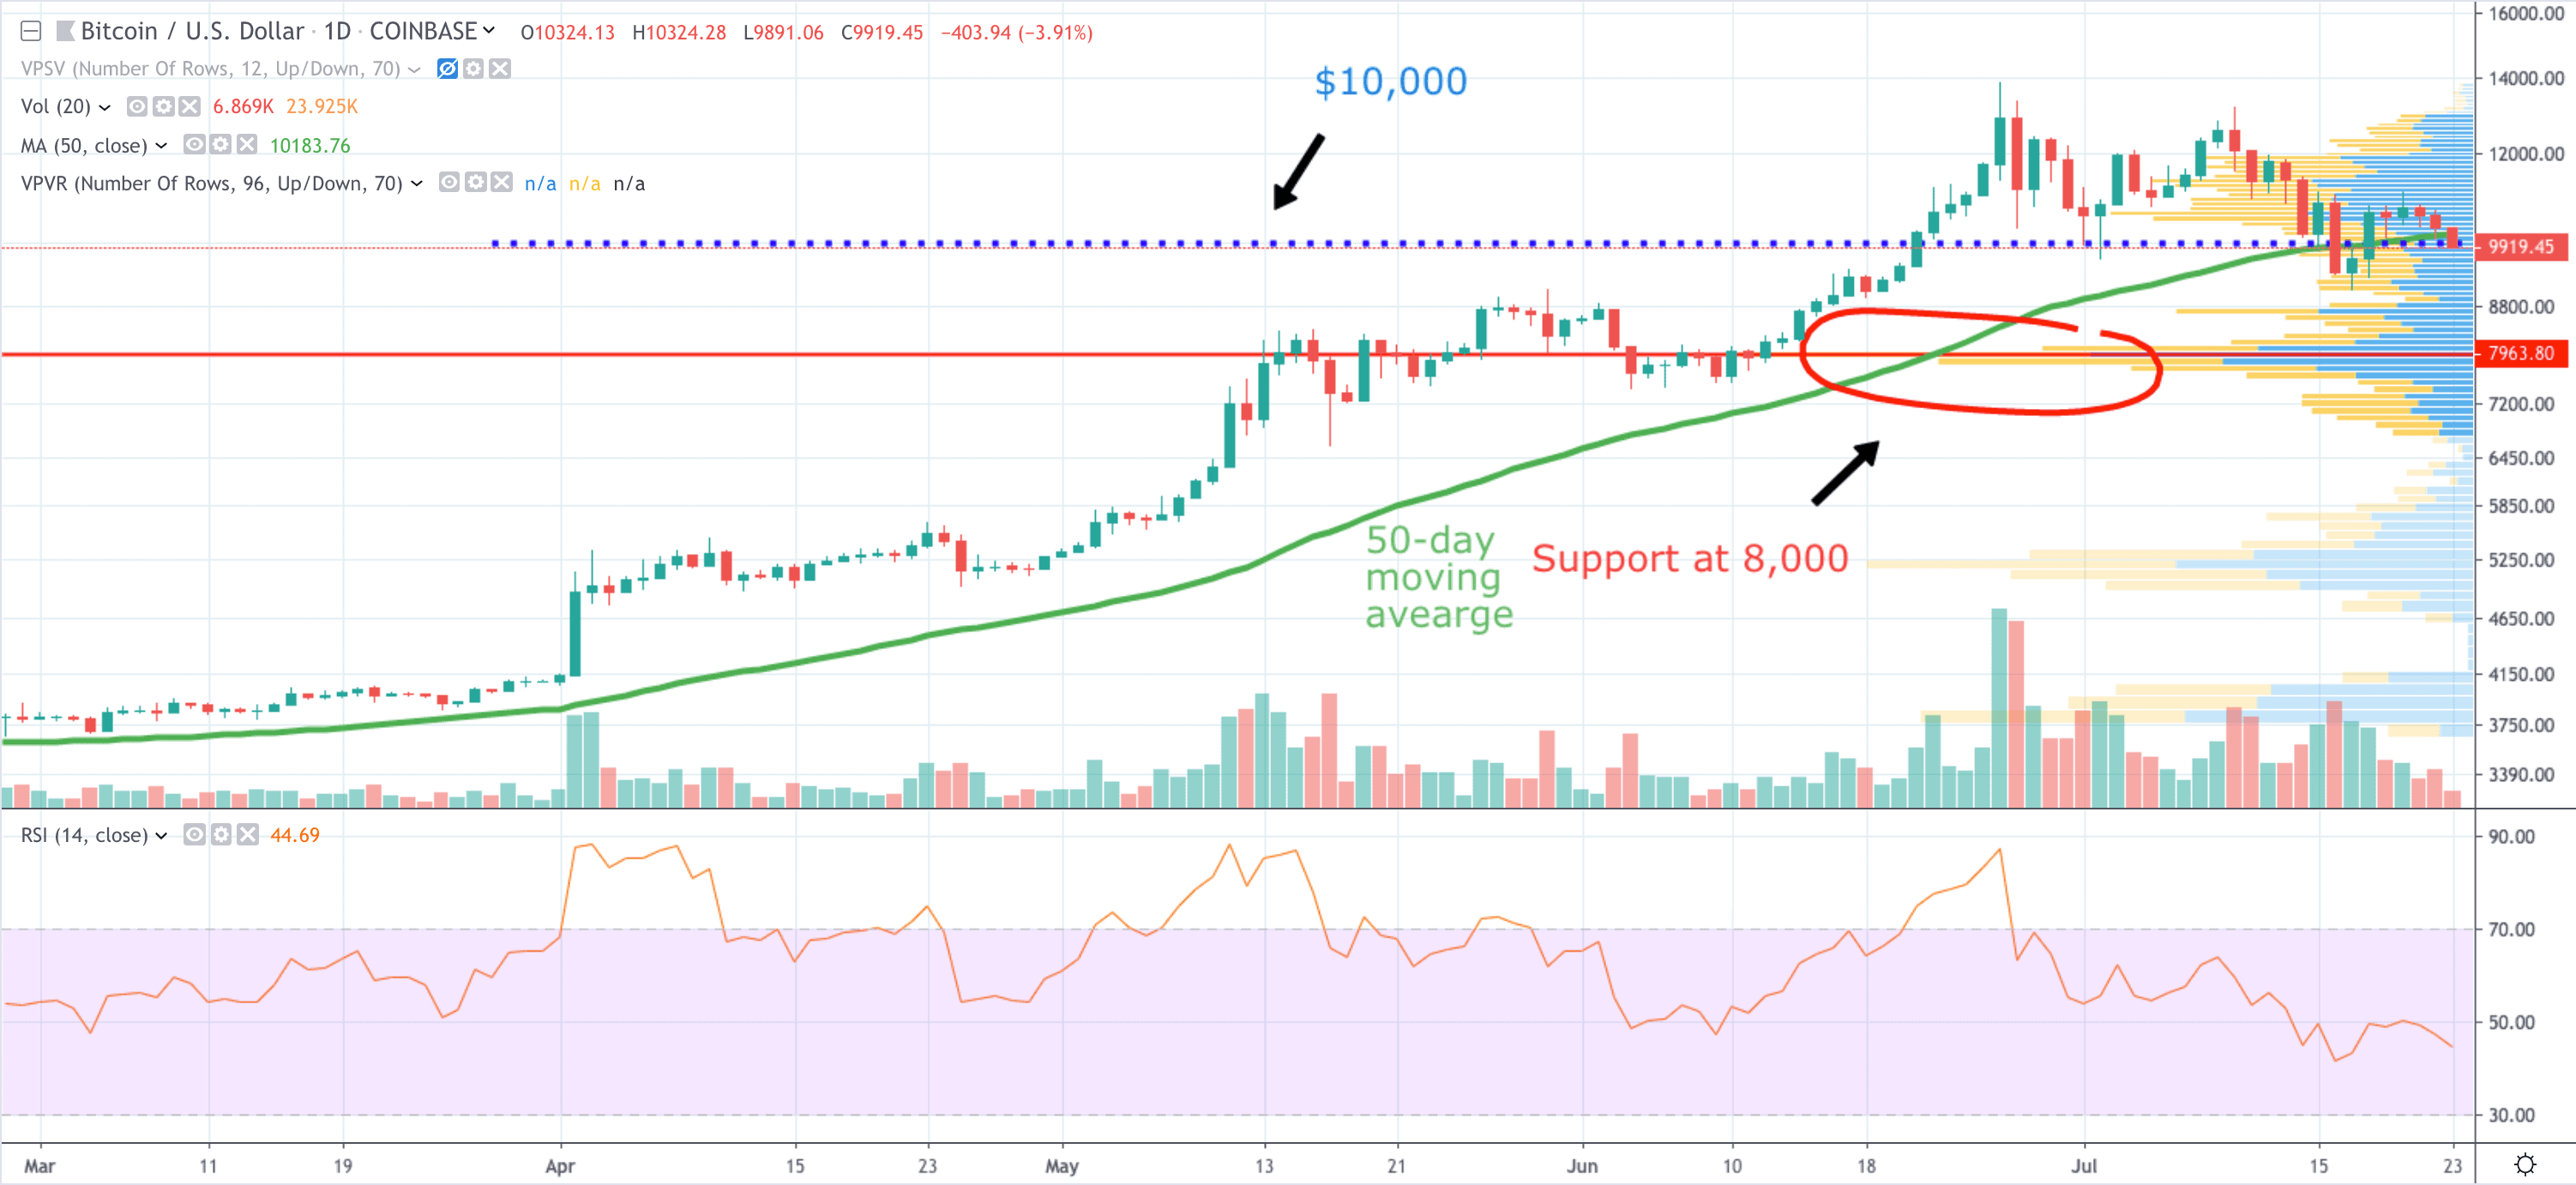 BTCUSD 1 day candle 23 July 2019